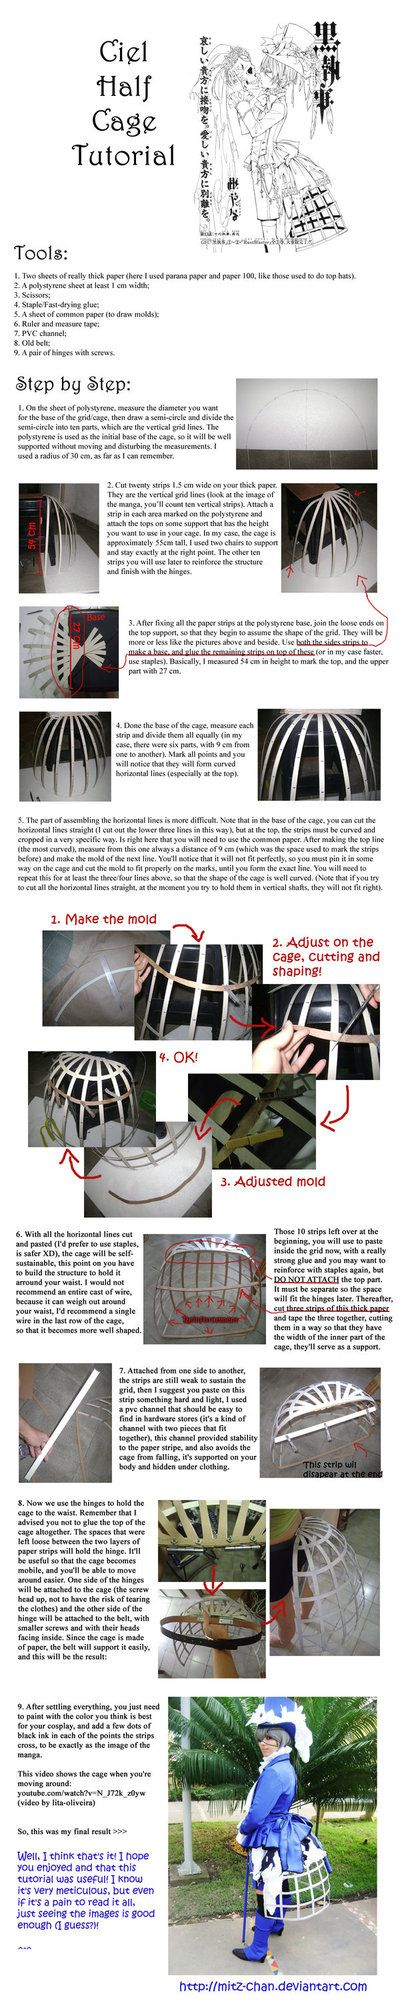 ....I think I could do this....  Half-Cage Tutorial .En. by ~Mitz-chan on deviantART